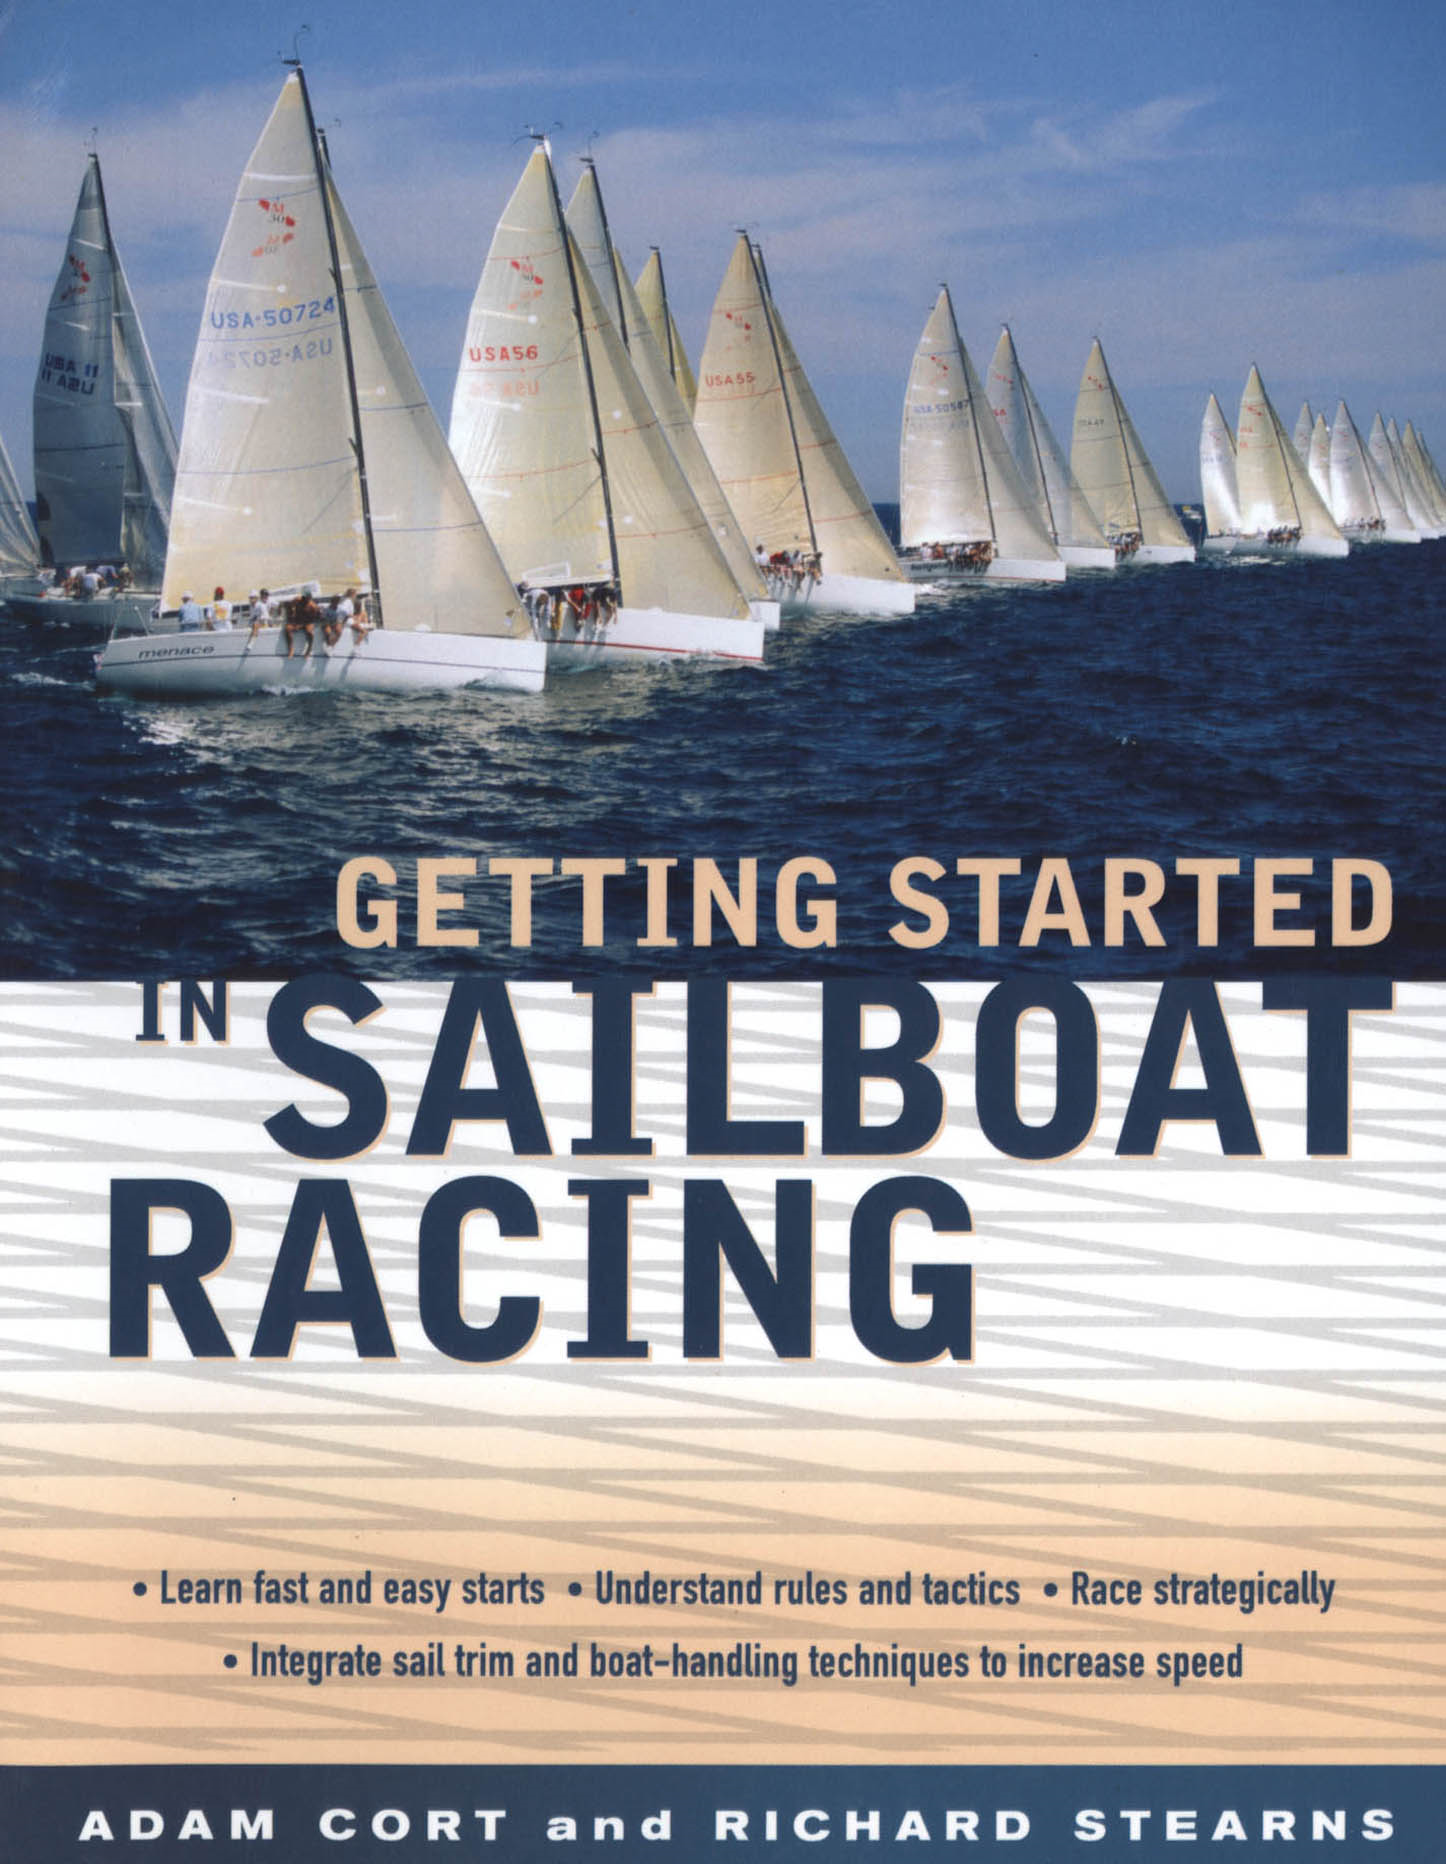 Getting Started in Sailboat Racing